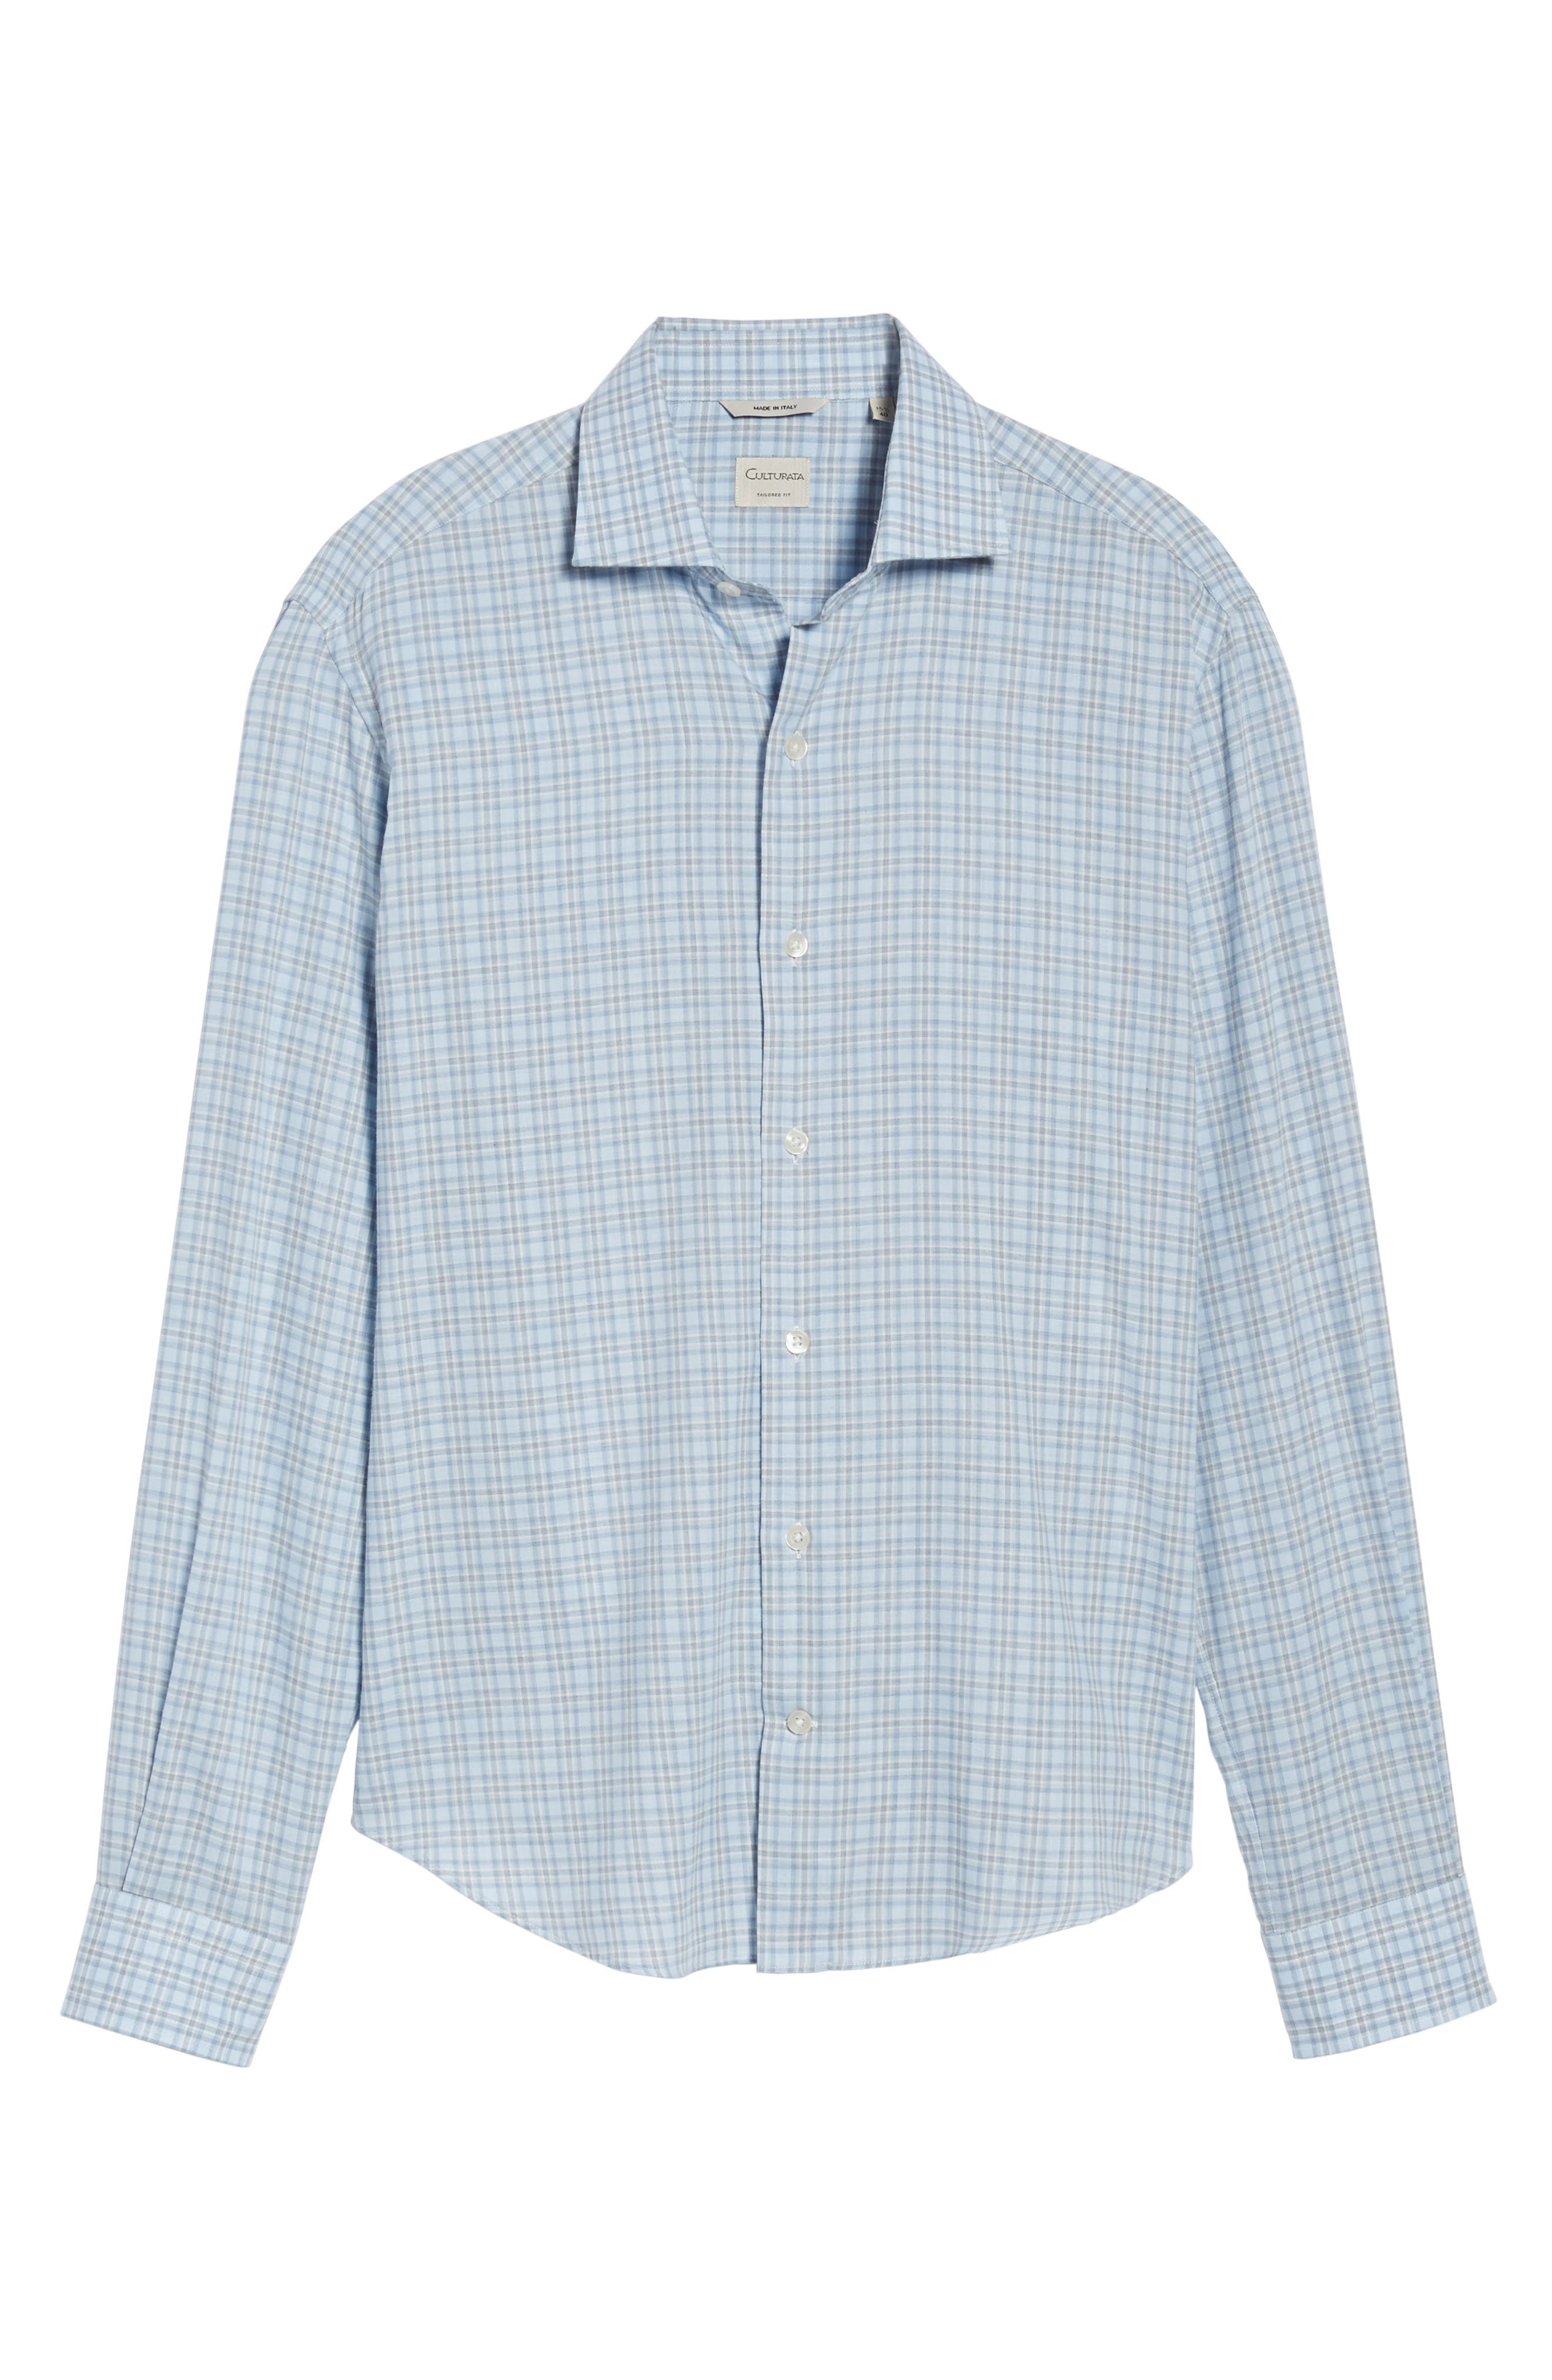 Plaid Sport Shirt,                             Alternate thumbnail 6, color,                             Blue